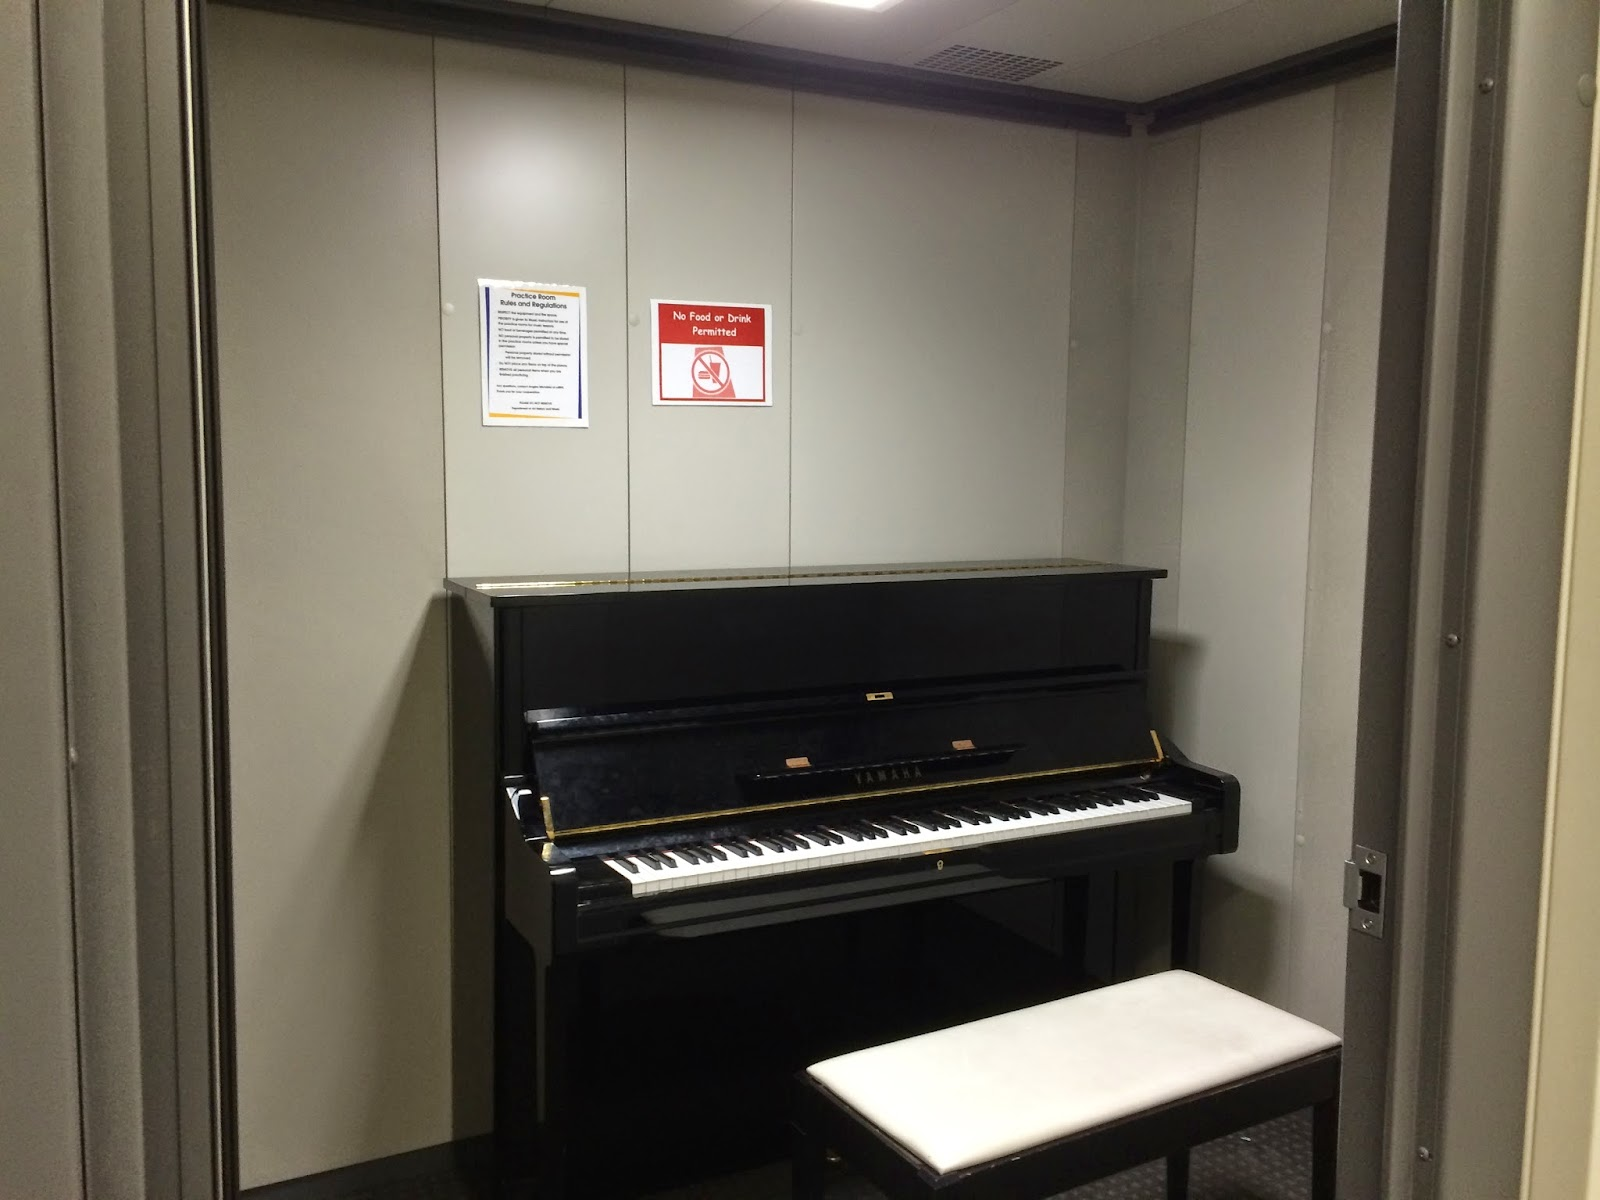 A Standard Practice Room In Keating Hall's Basement With A Piano I Have My  Weekly Voice Lessons Here And I Also Love Toe Here On My Spare Time To  Have